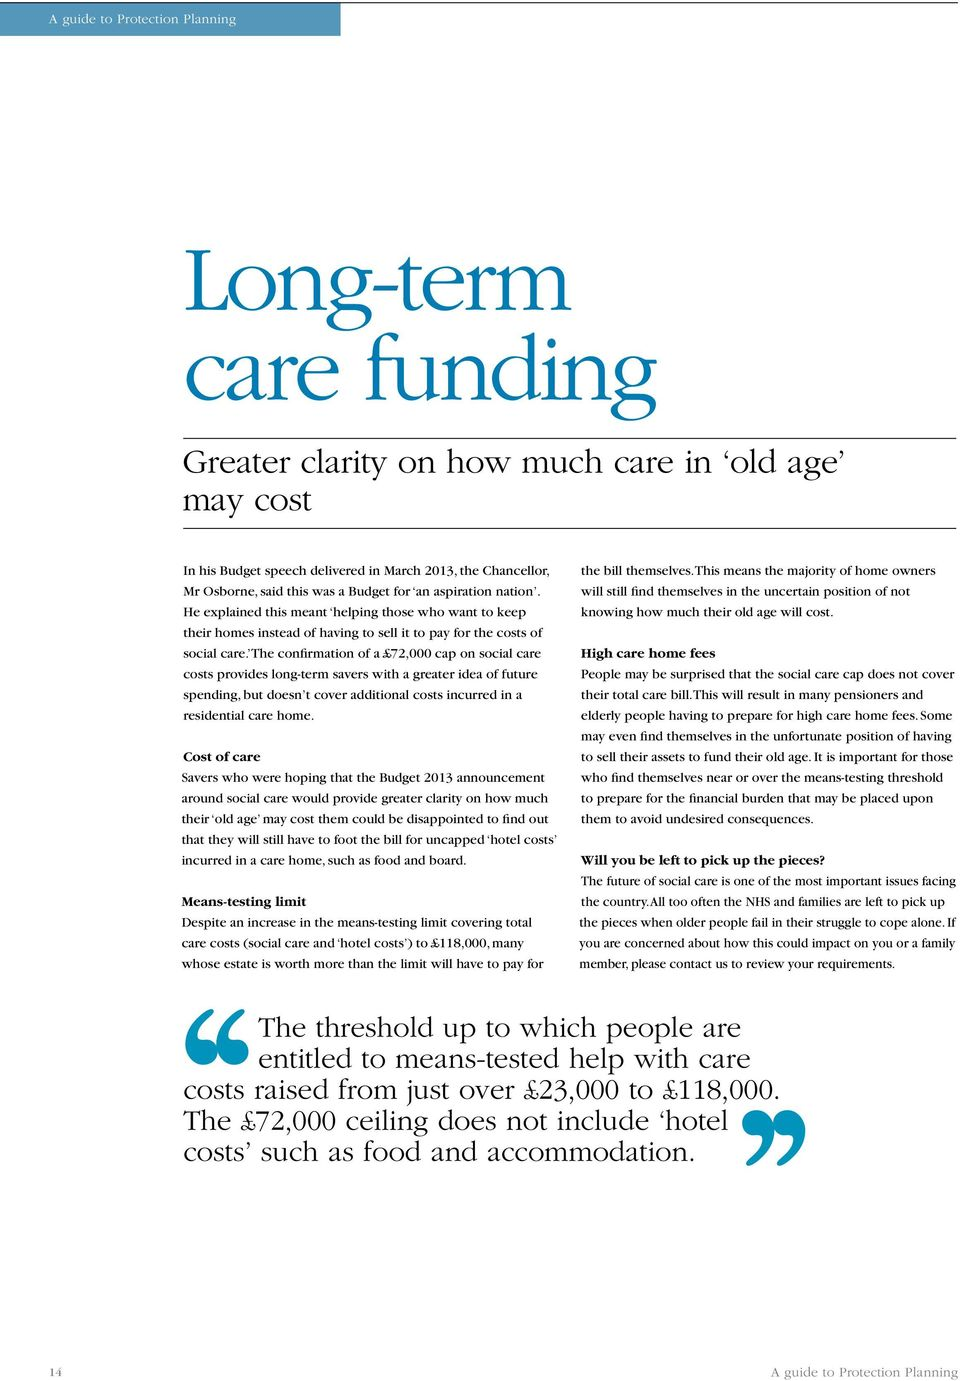 The confirmation of a 72,000 cap on social care costs provides long-term savers with a greater idea of future spending, but doesn t cover additional costs incurred in a residential care home.